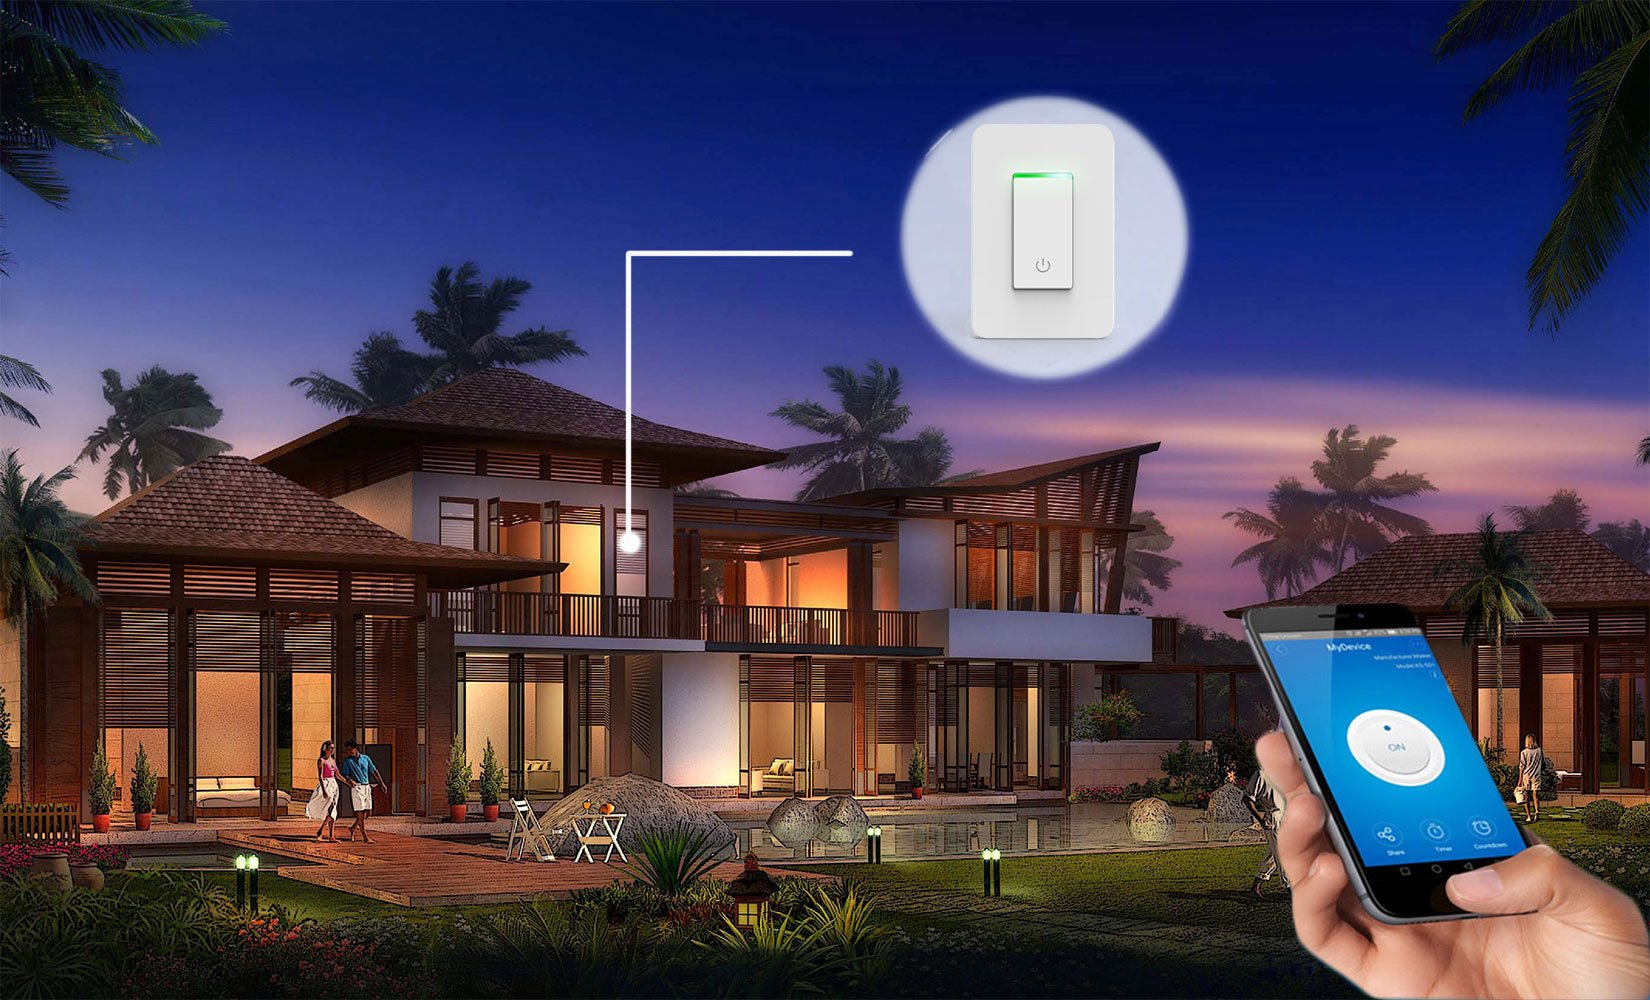 Smart Light Switch,Wi-Fi Switch Wireless Light Switch Compatible with Alexa and Google Home,Tempered Glass Touch Screen Switch with Timer Function and Overload Protection No Hub Required